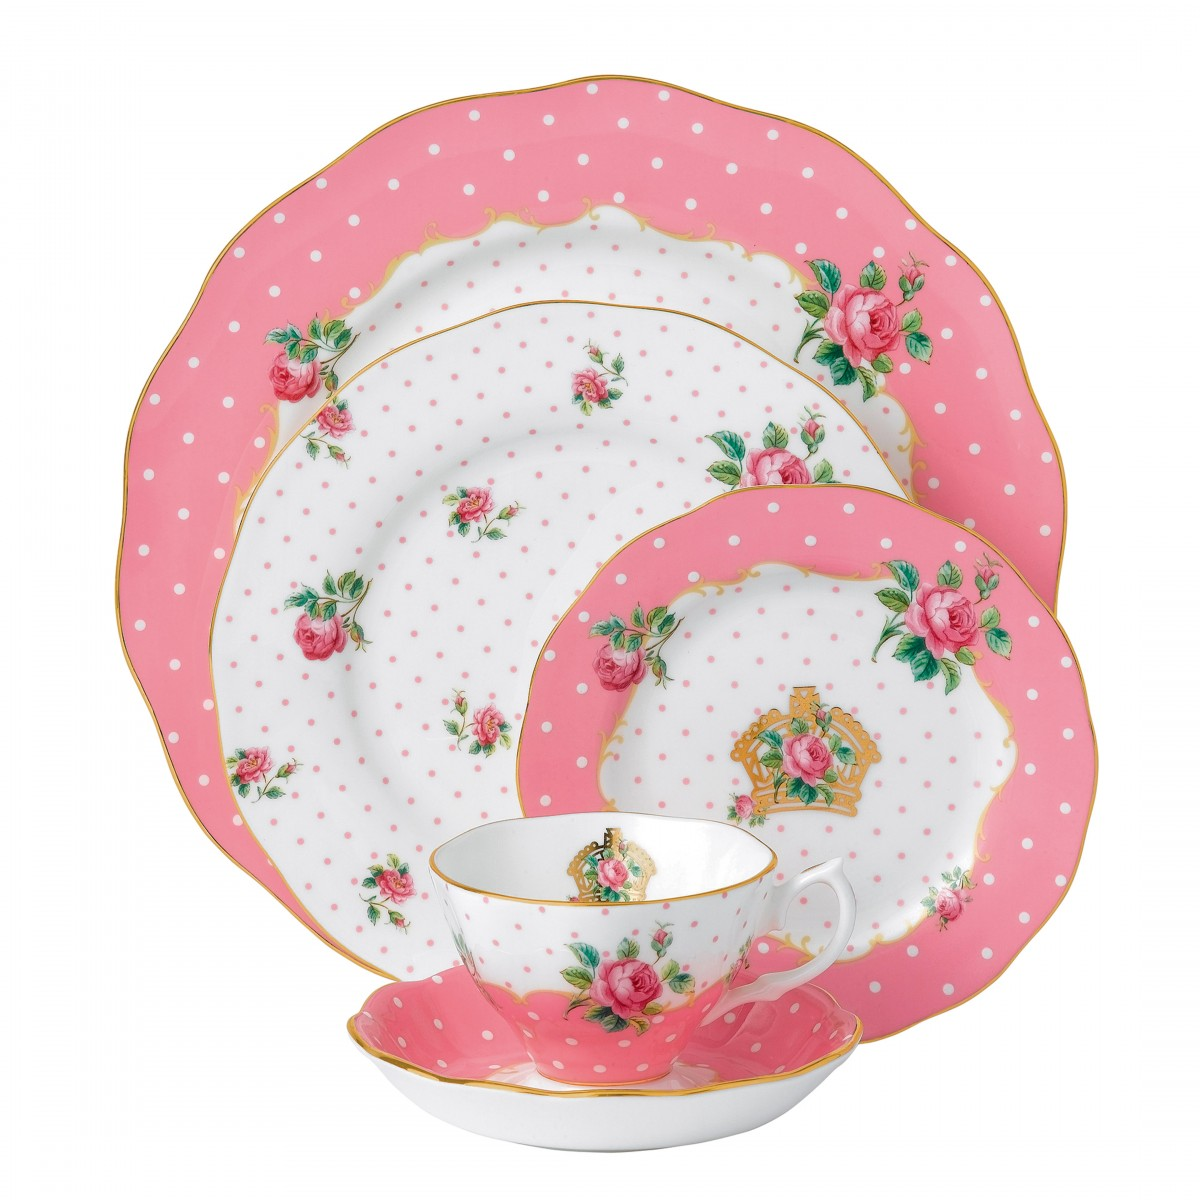 Royal Albert China New Country Roses Cheeky Pink Vintage, 5 Piece Place Setting